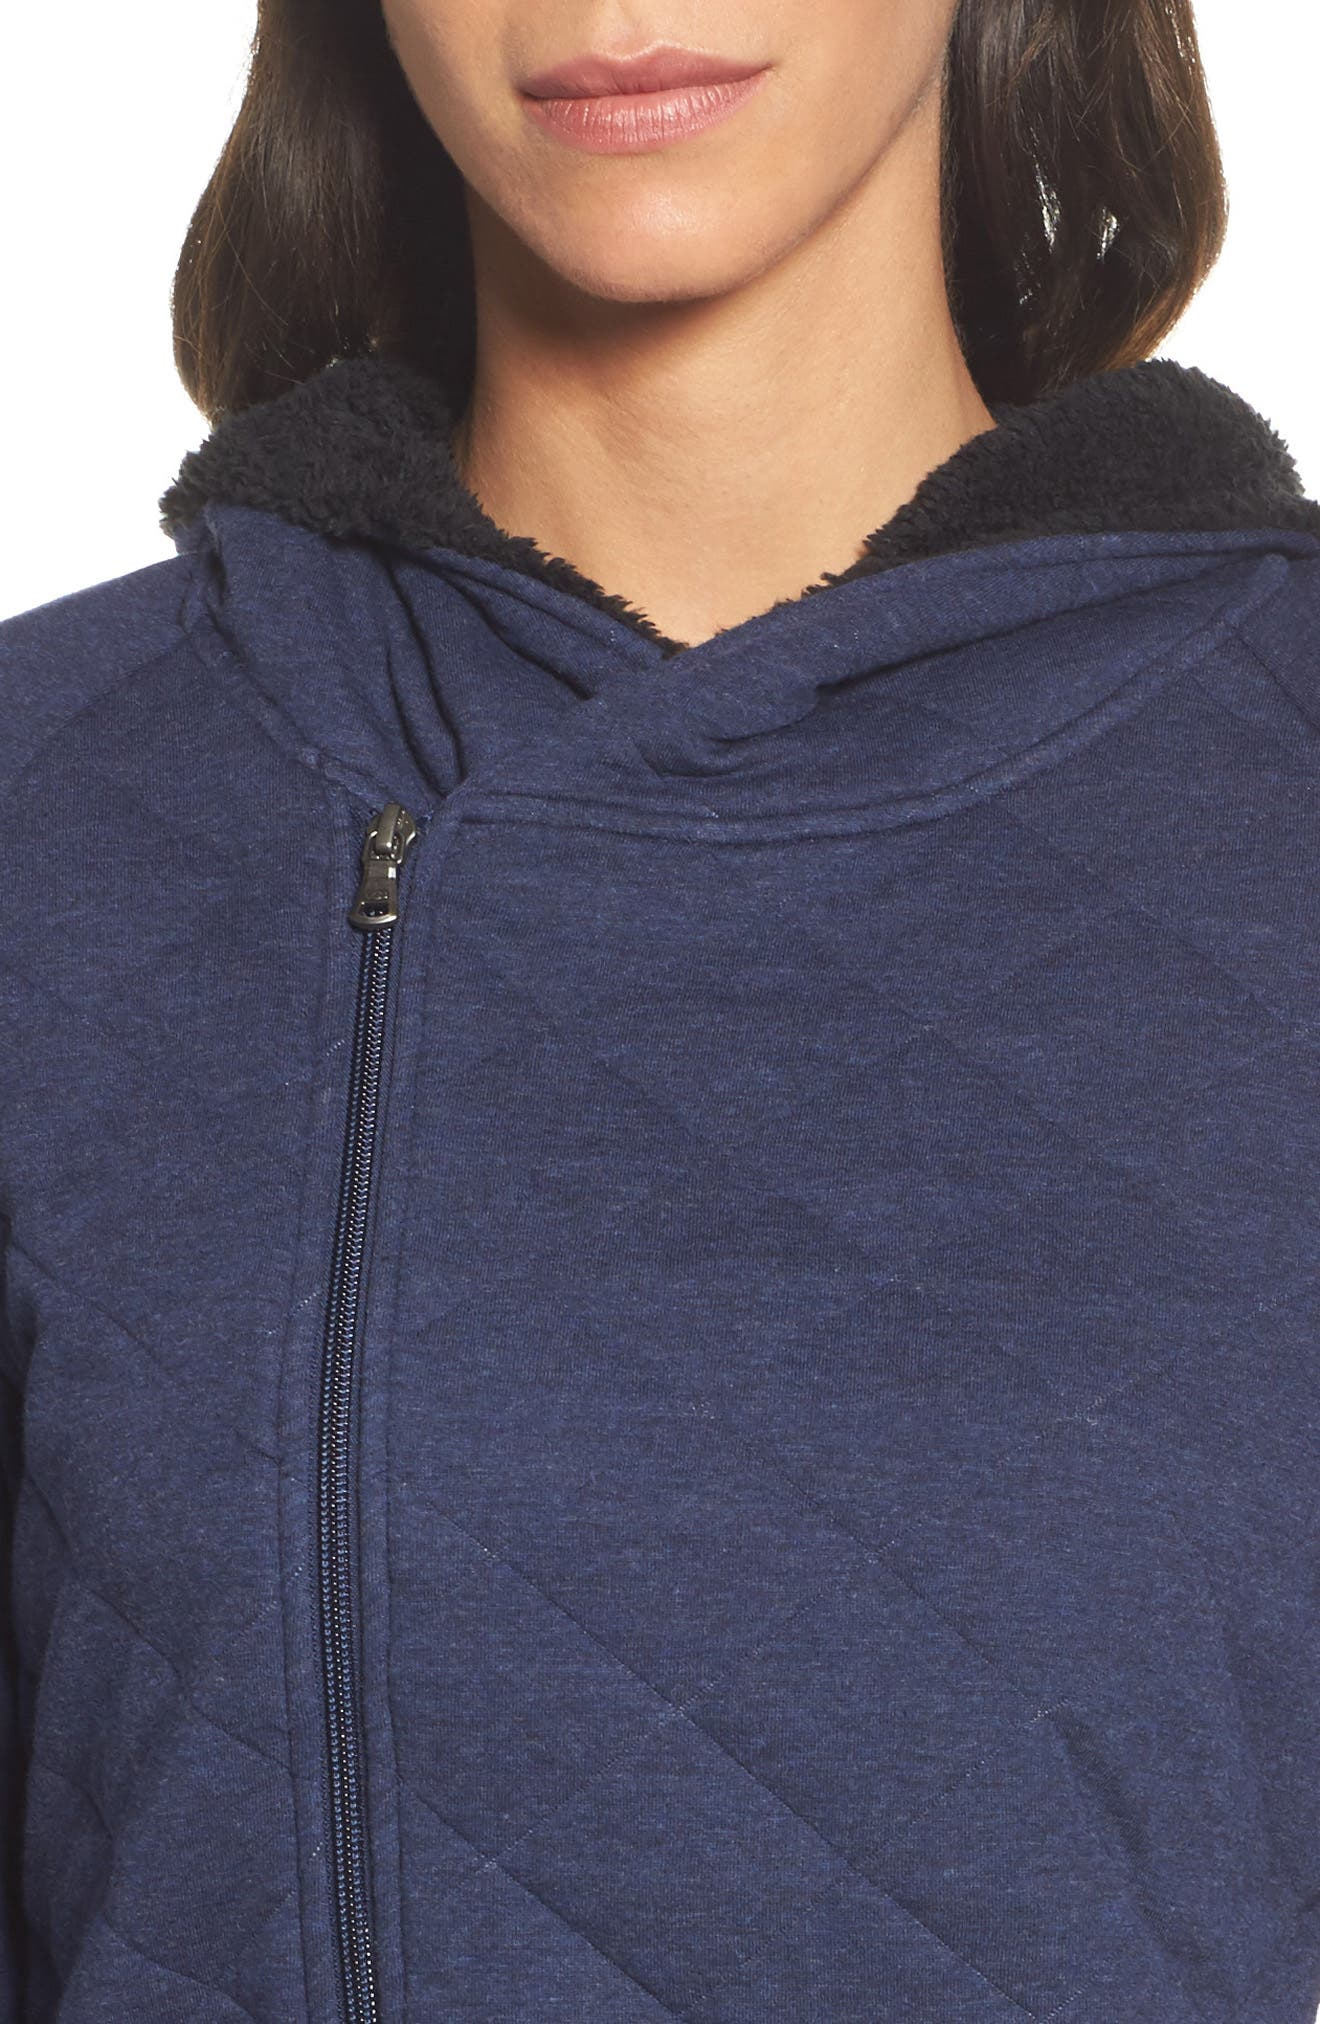 Australia Faux Shearling Lined Hoodie,                             Alternate thumbnail 5, color,                             Navy Heather